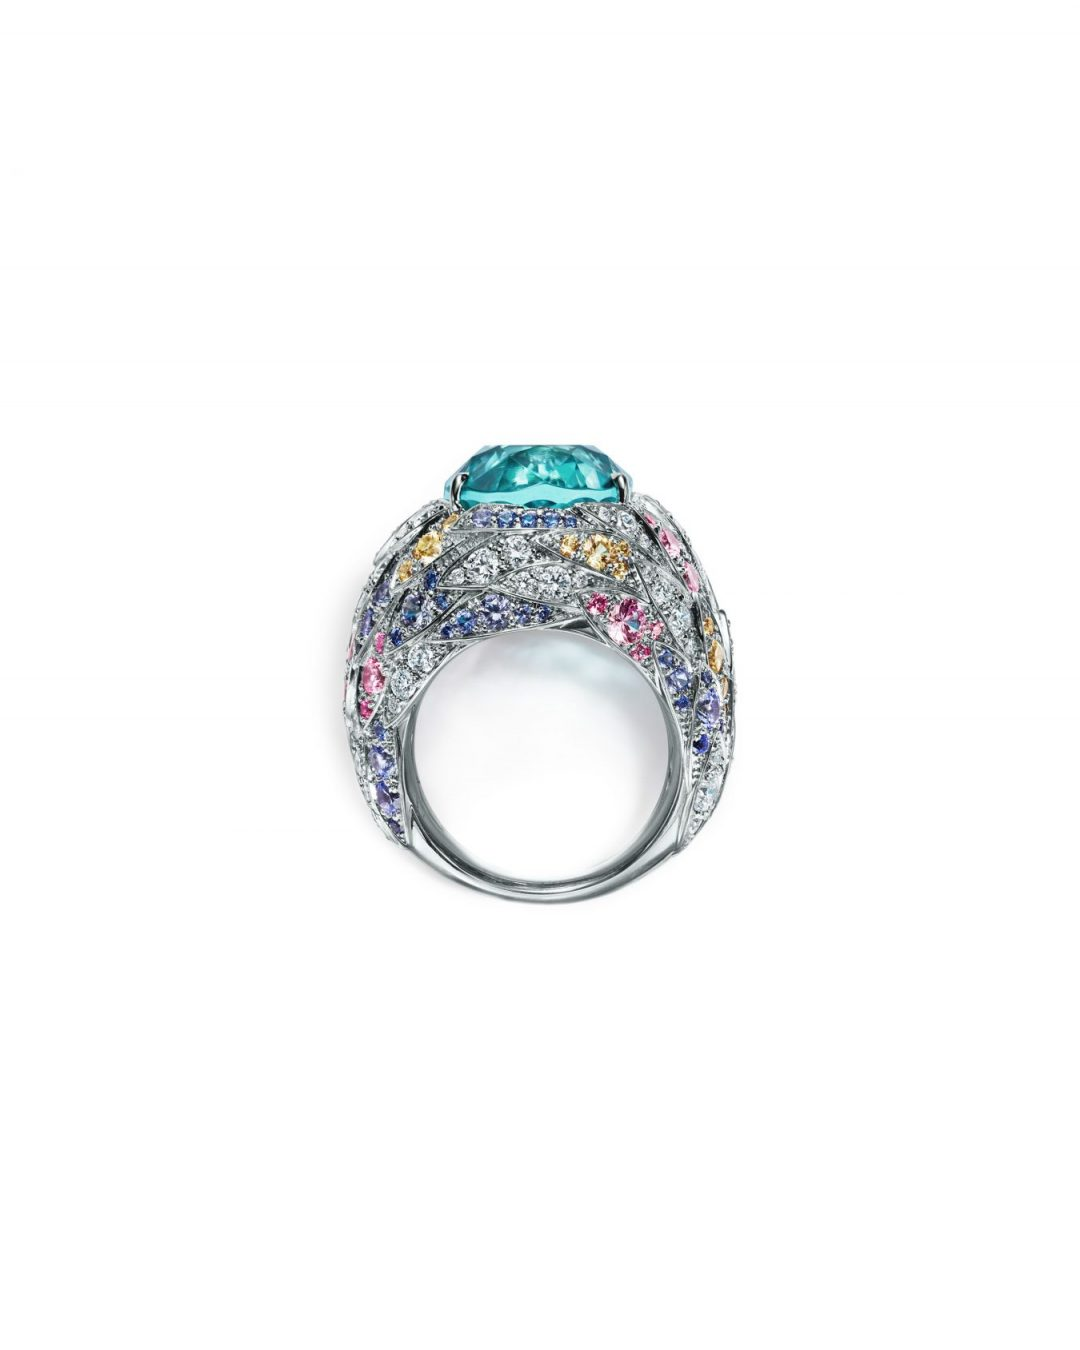 57e767e0fce5 Ring in platinum with blue cuprian elbaite tourmaline